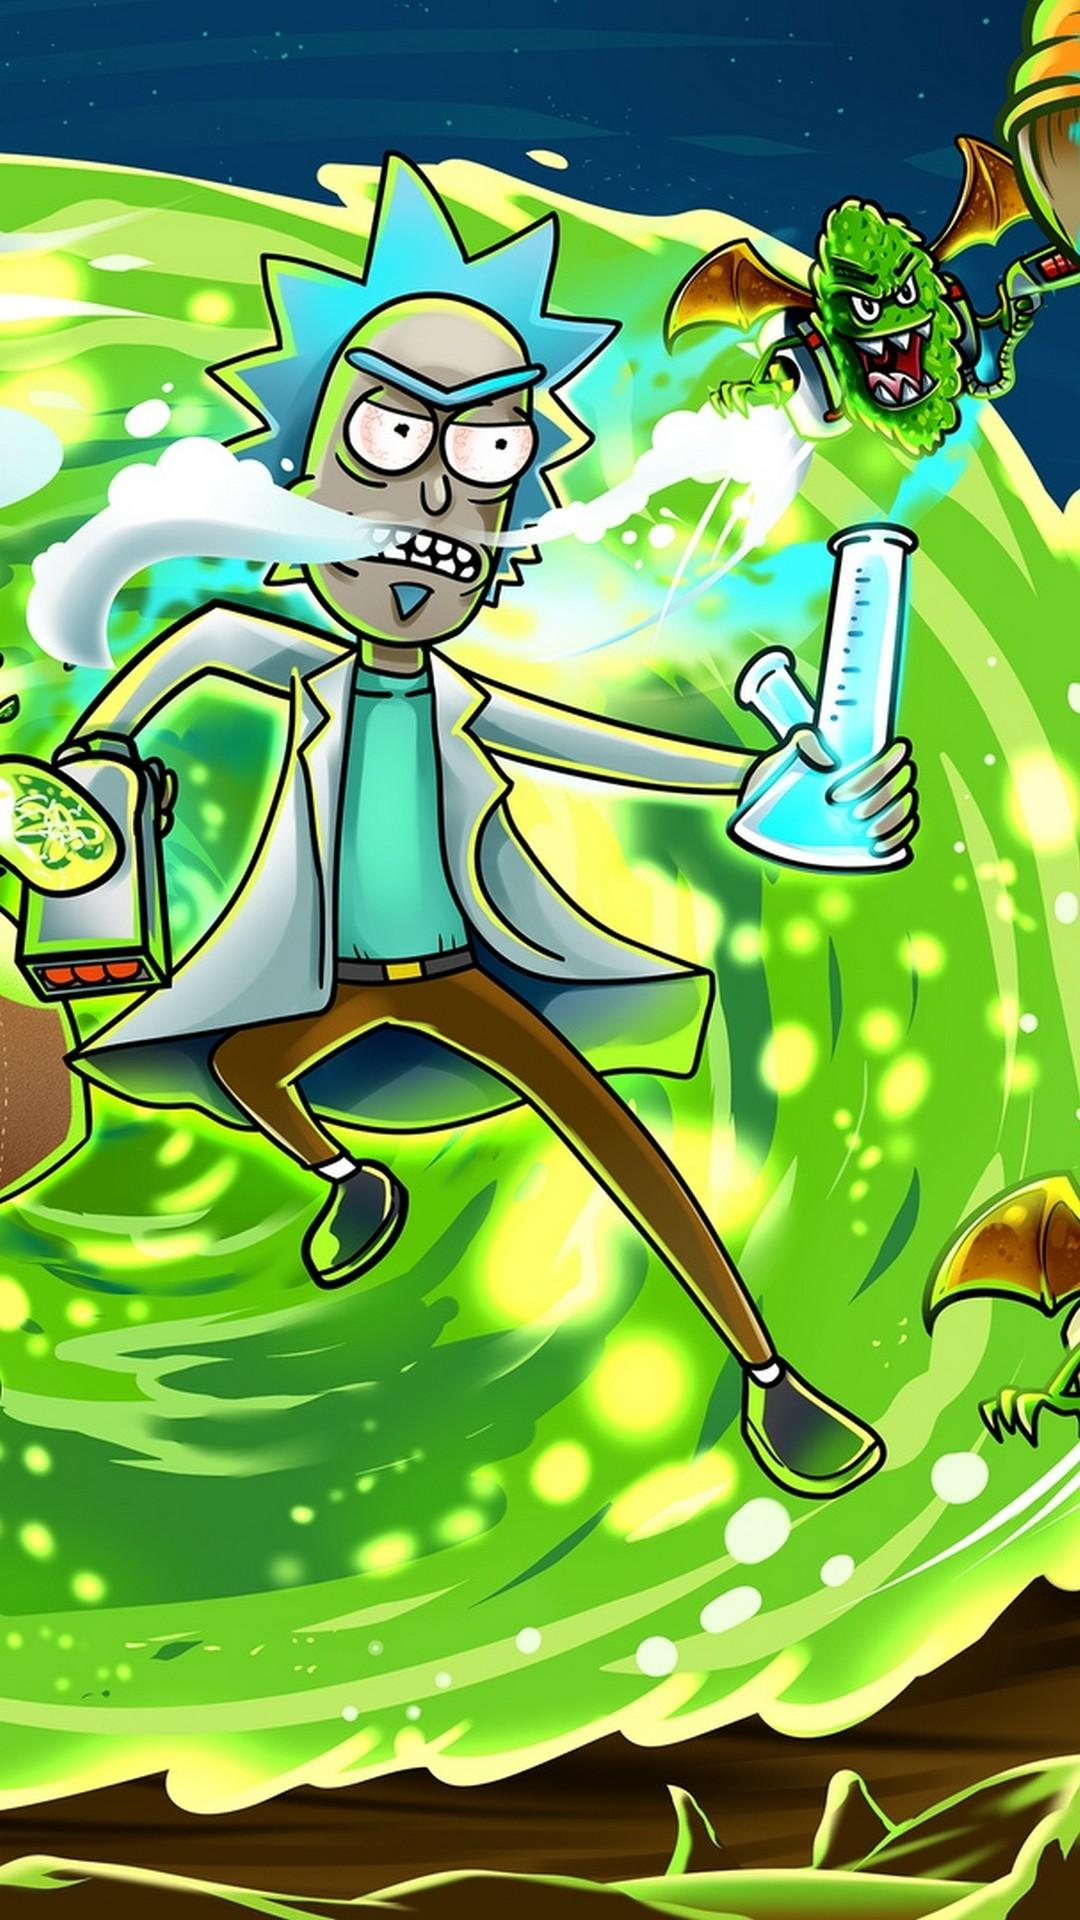 Download Rick And Morty Wallpaper Hd Backgrounds Download